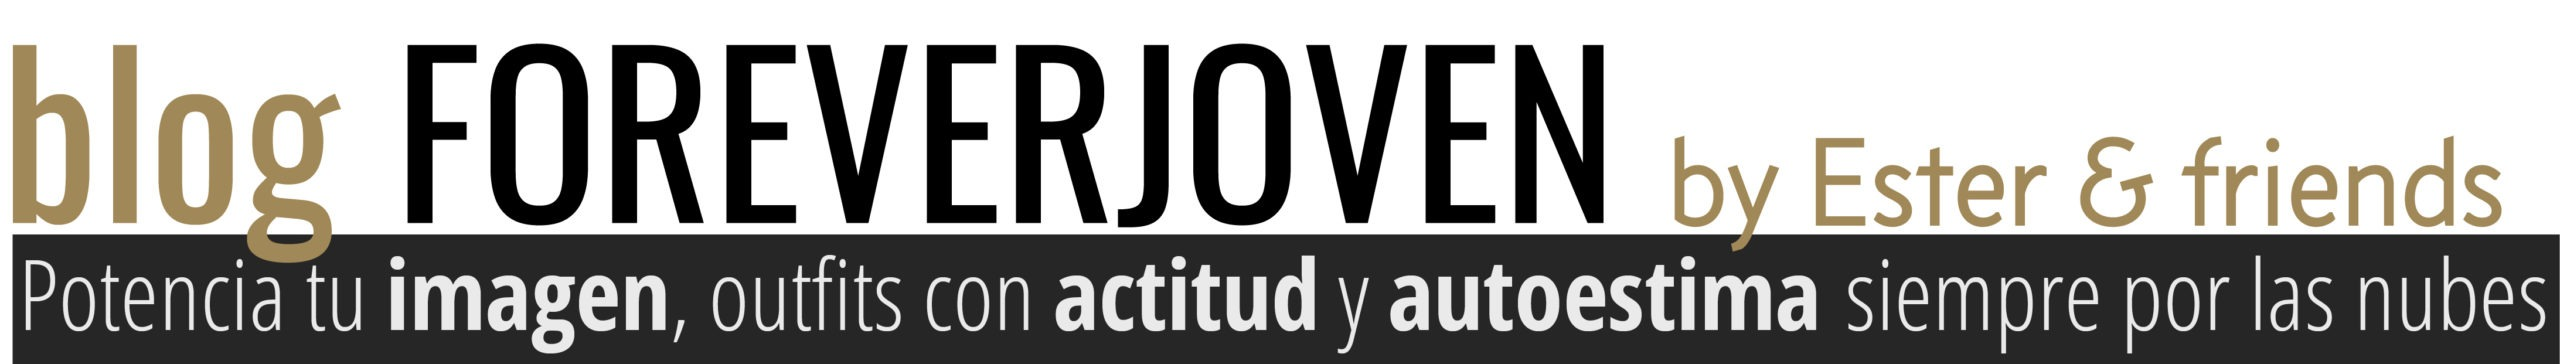 Blog de ForeverJoven by Ester